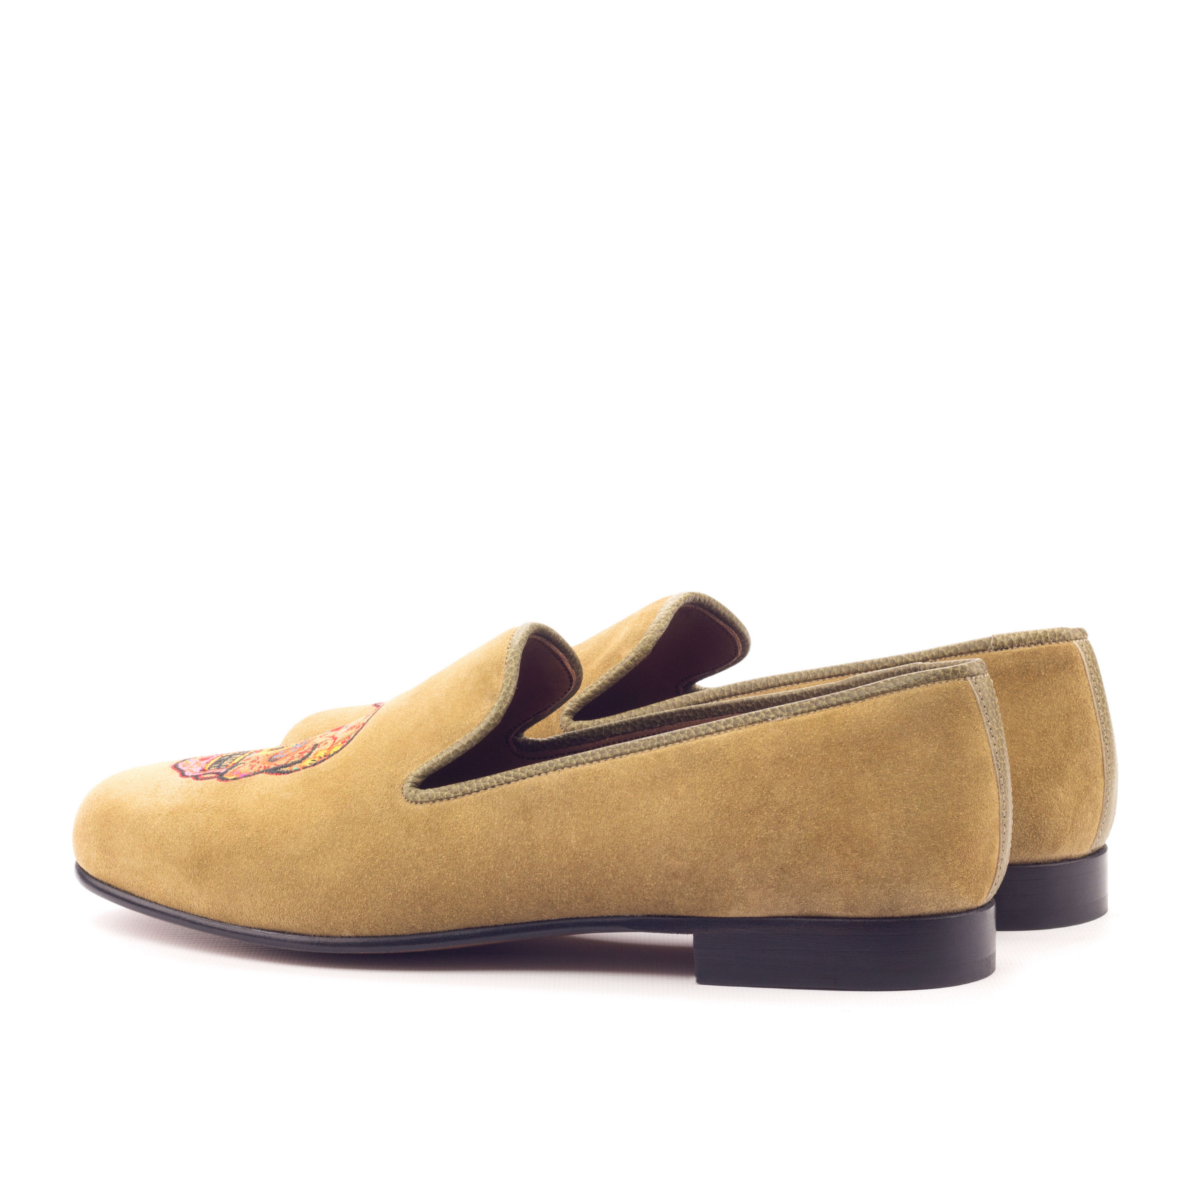 ed3887630d045d Camel suede Slipper - Cambrillón Bespoke Leather